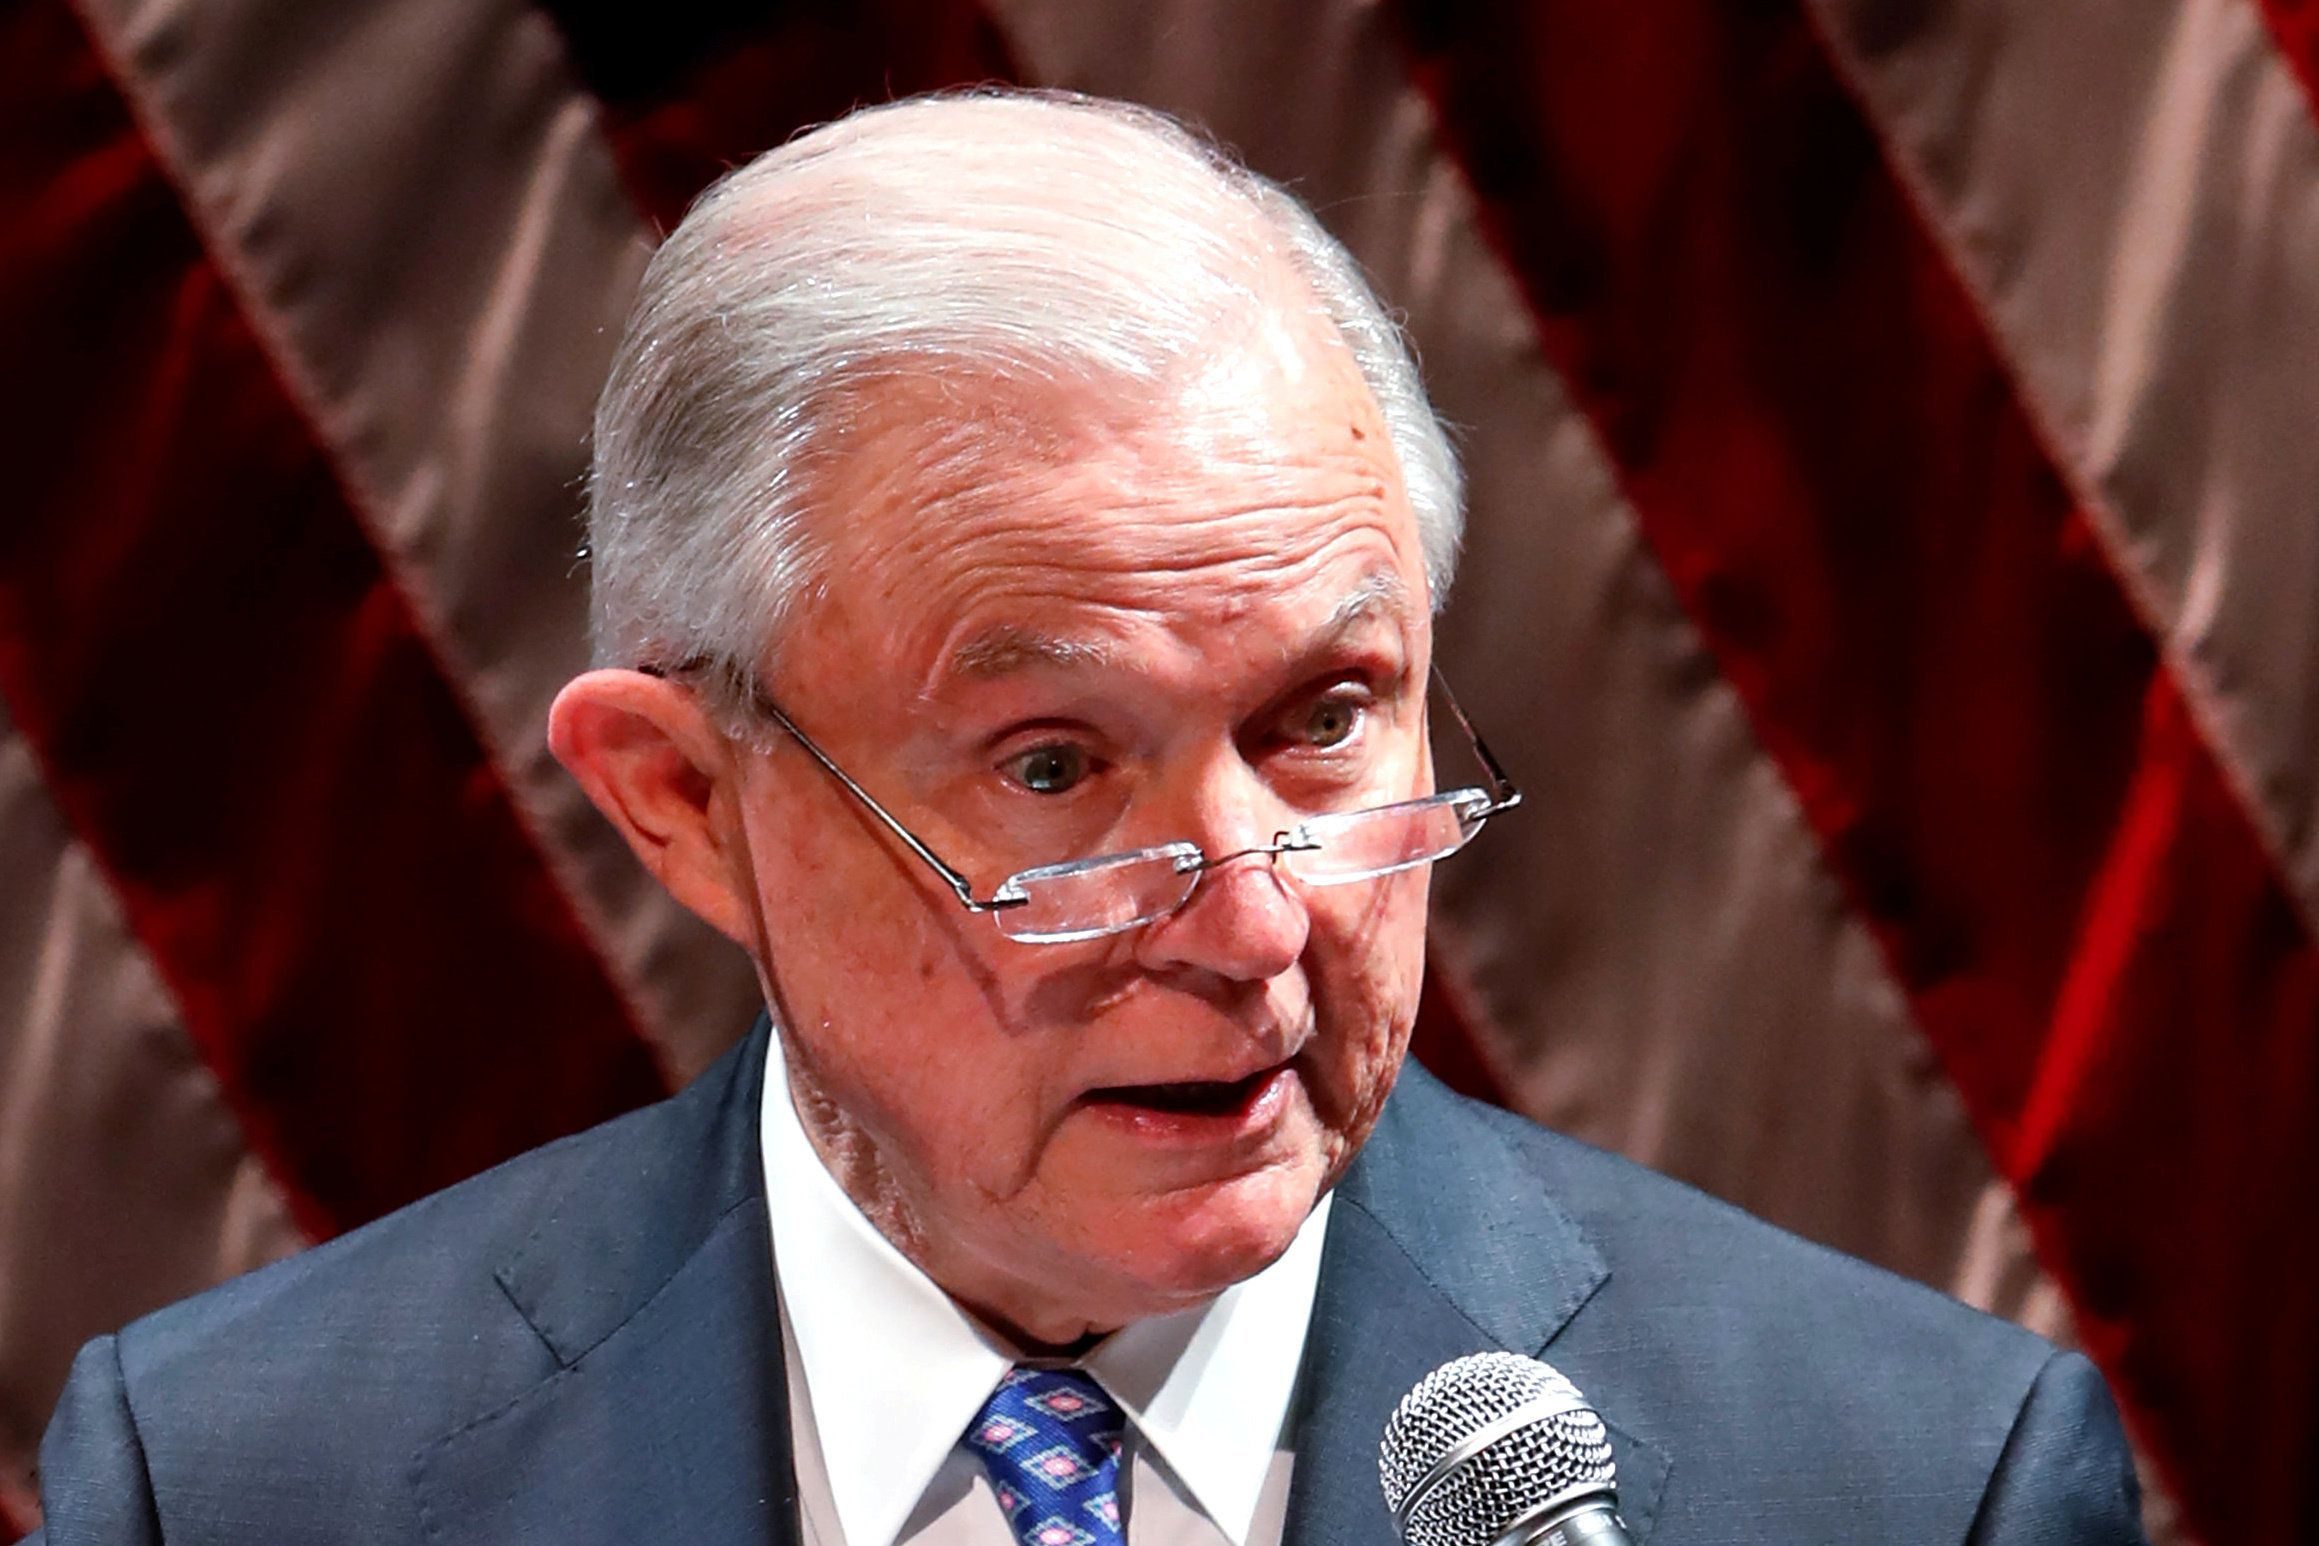 United States Attorney General Jeff Sessions speaks at Valor Survive and Thrive Conference in Waukegan, Illinois, U.S., September 19, 2018. Picture taken September 19, 2018. REUTERS/Kamil Krzaczynski